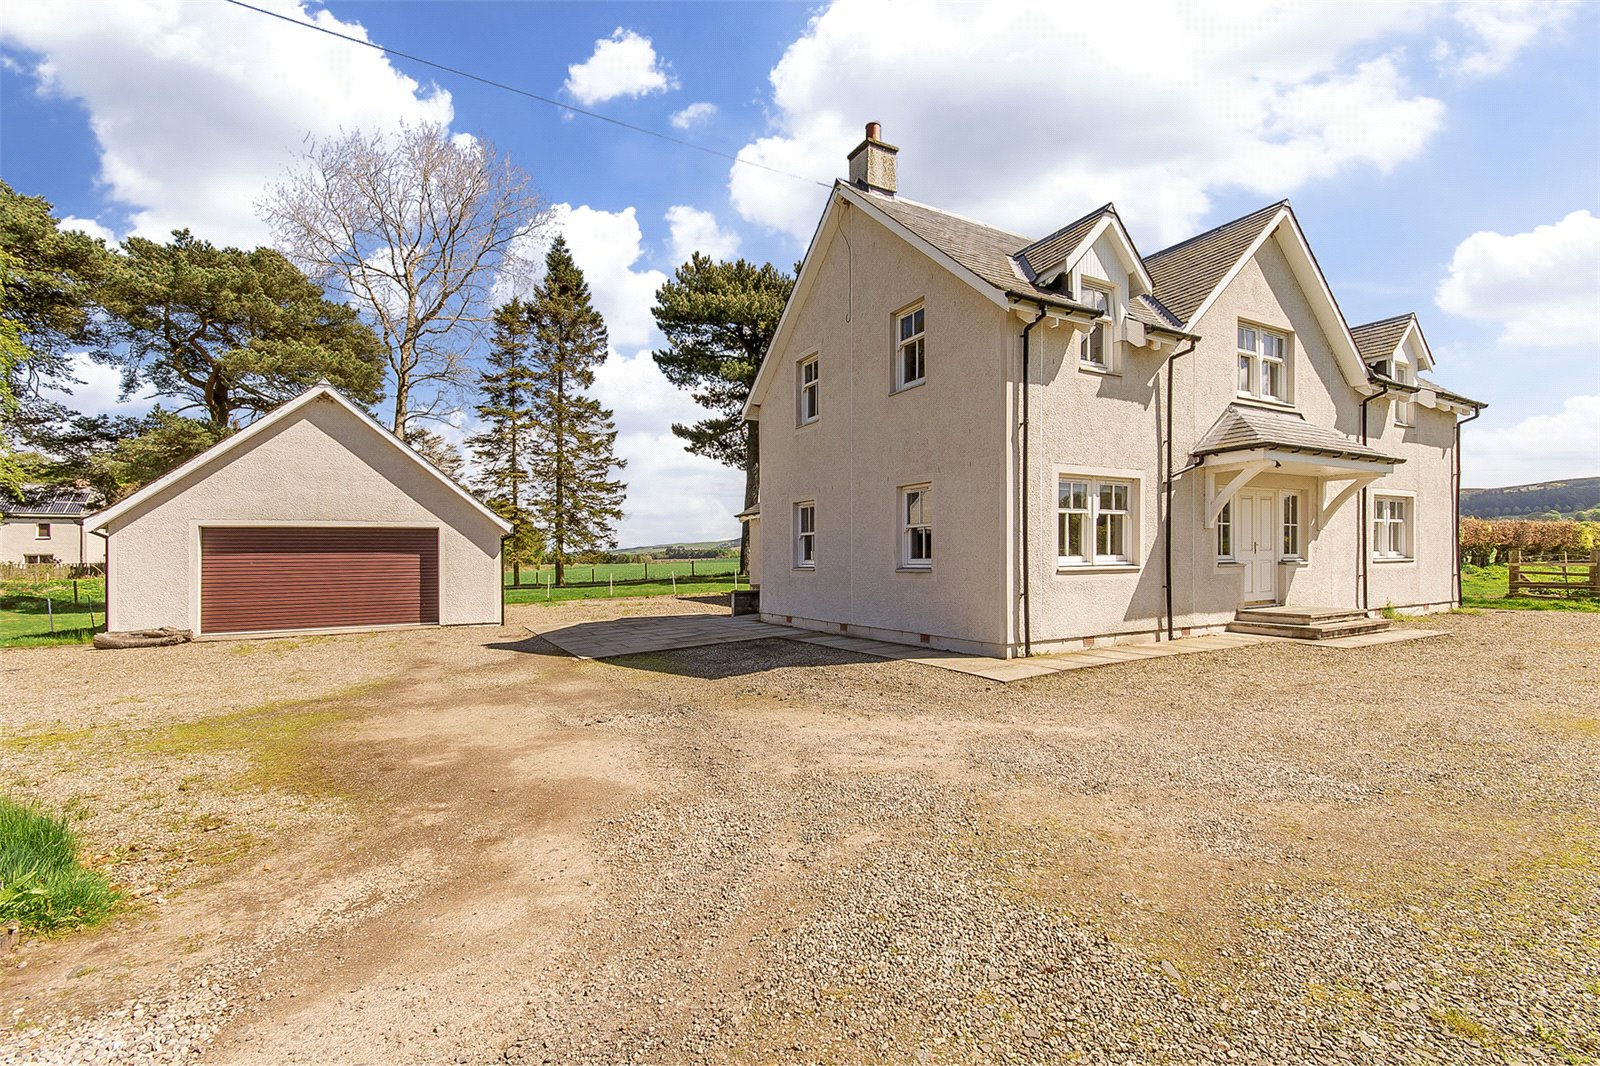 Detached house in the country with two acres of paddock